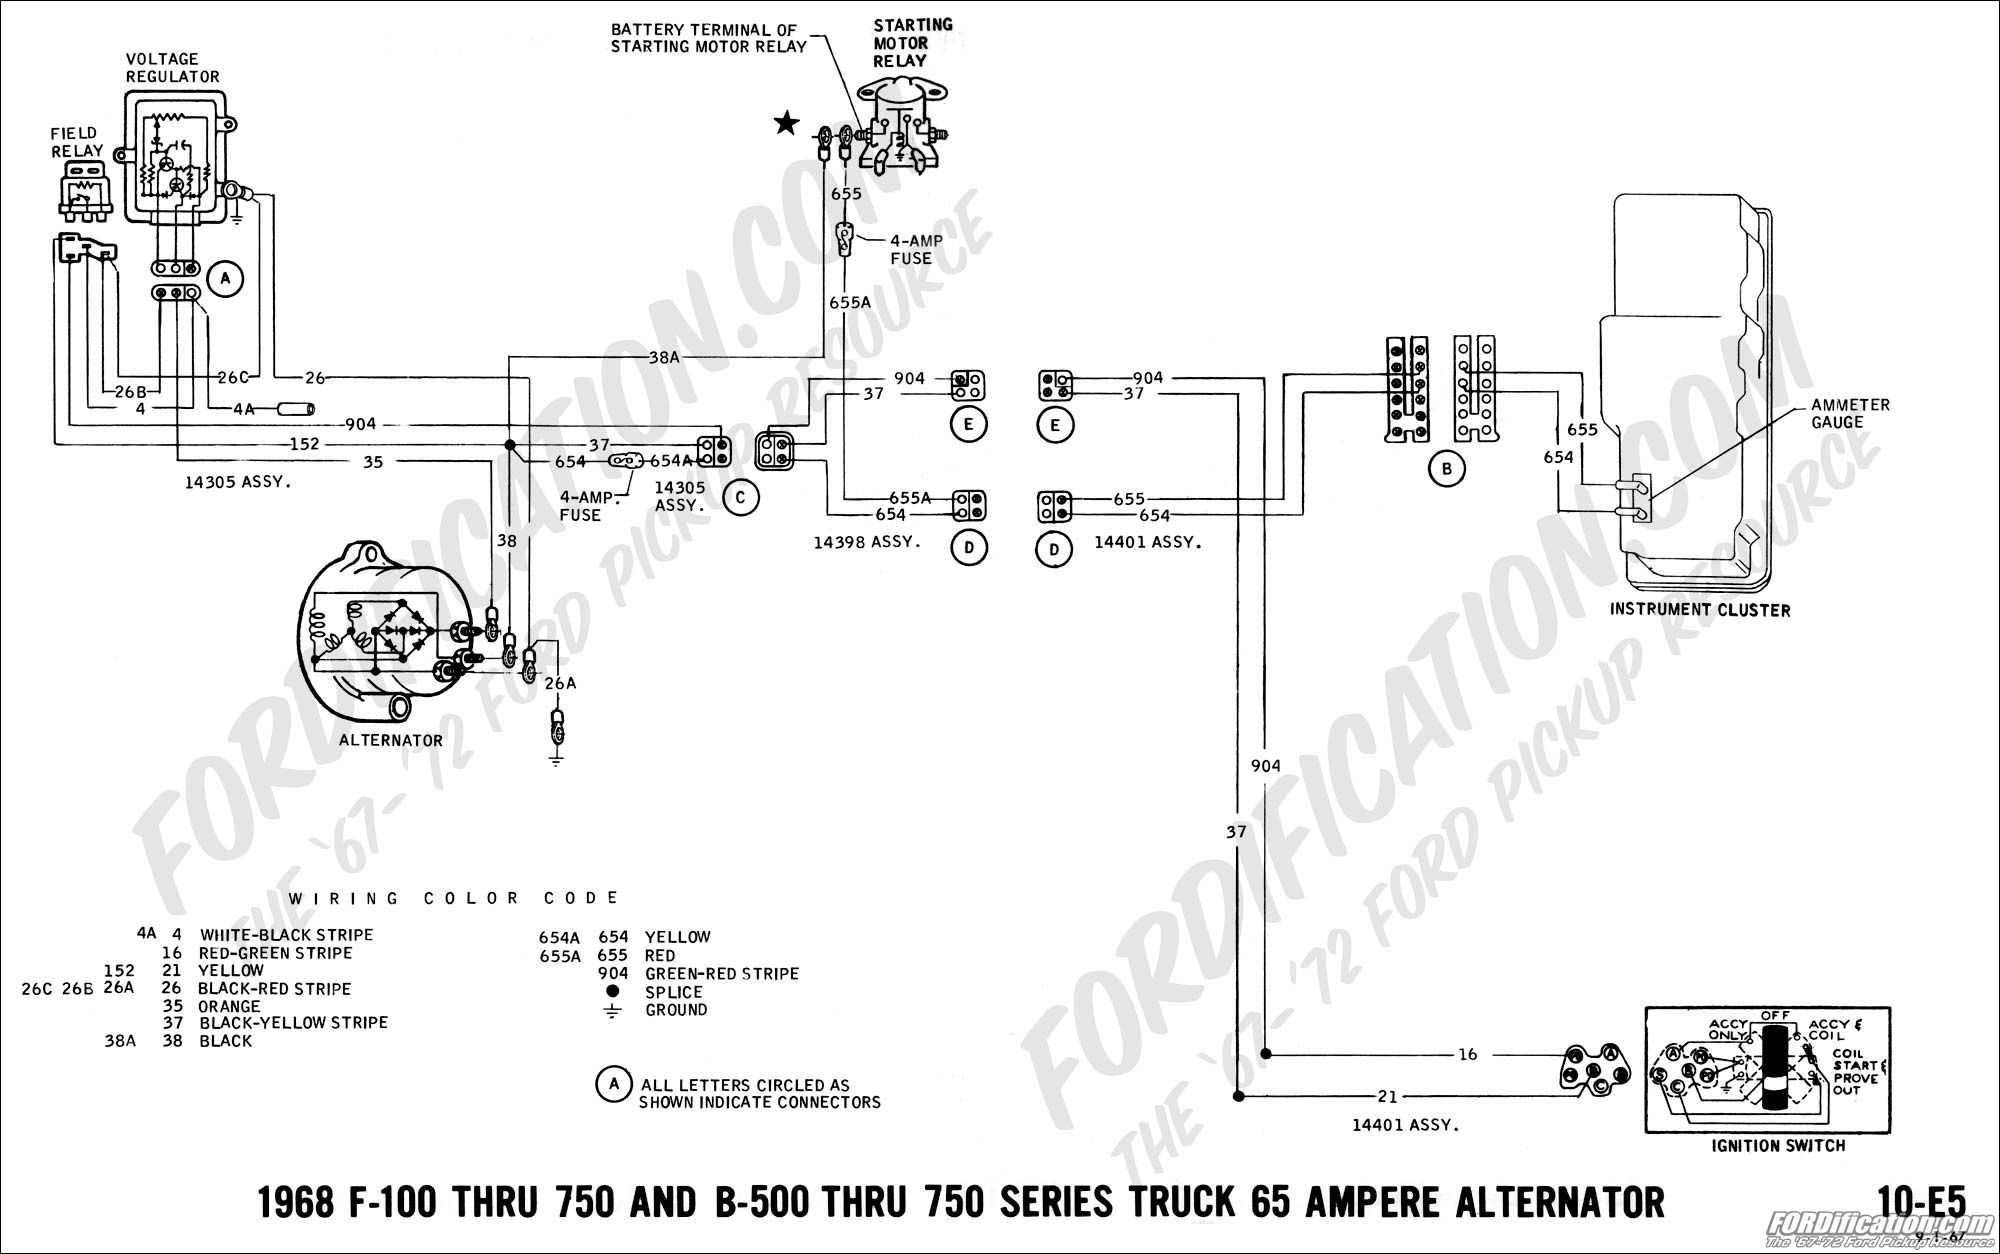 medium resolution of 1978 f150 alternator wiring diagram wiring diagram third level dodge alternator wiring diagram 1985 ford f 150 alternator wiring diagram